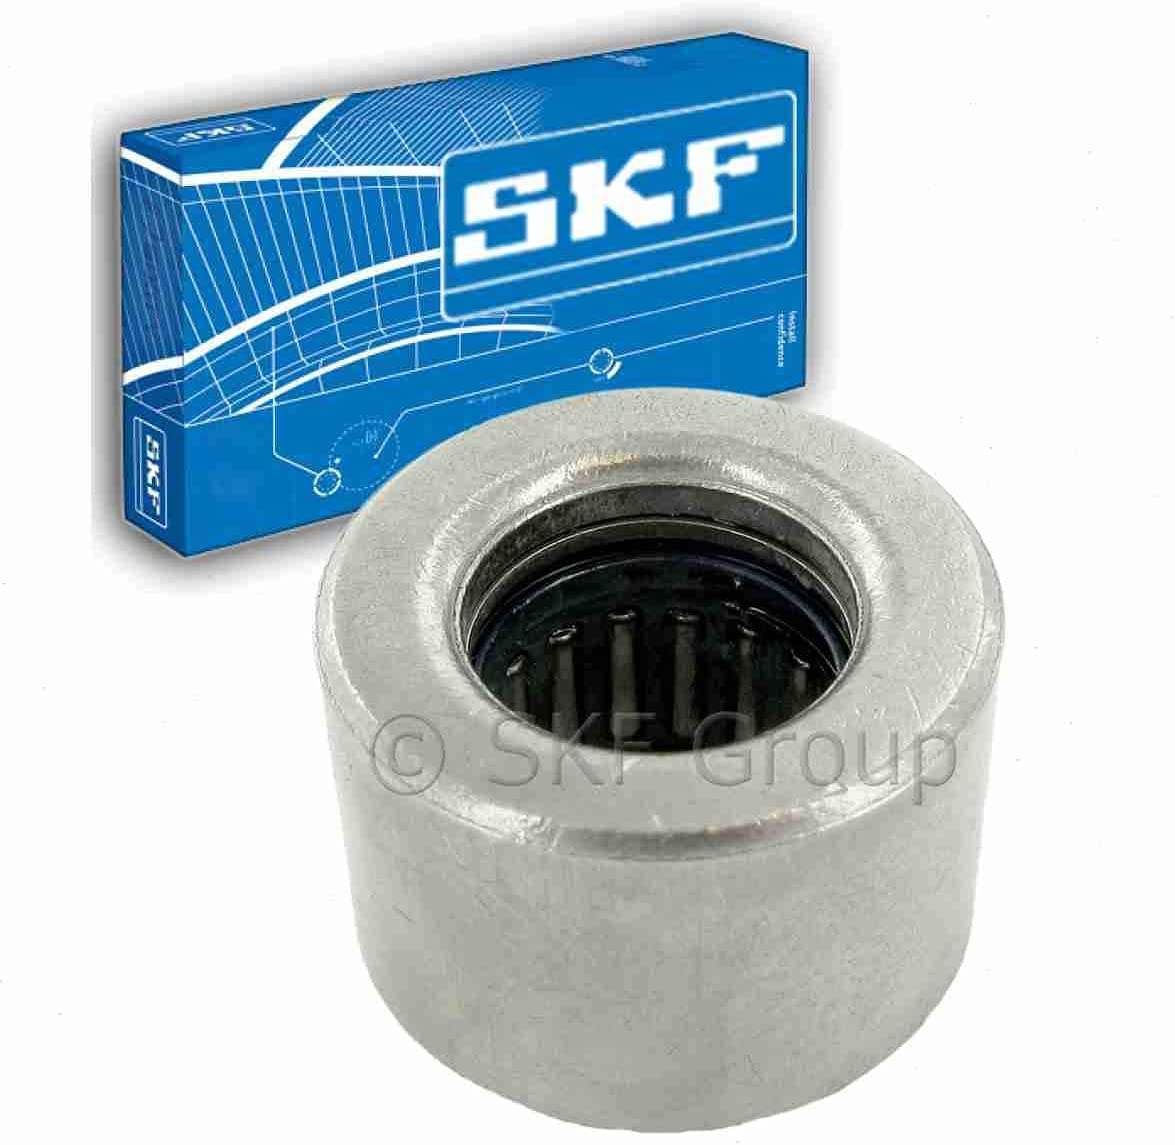 SKF favorite Clutch Pilot Bearing compatible Spasm price GTO 2004-2006 with Pontiac T